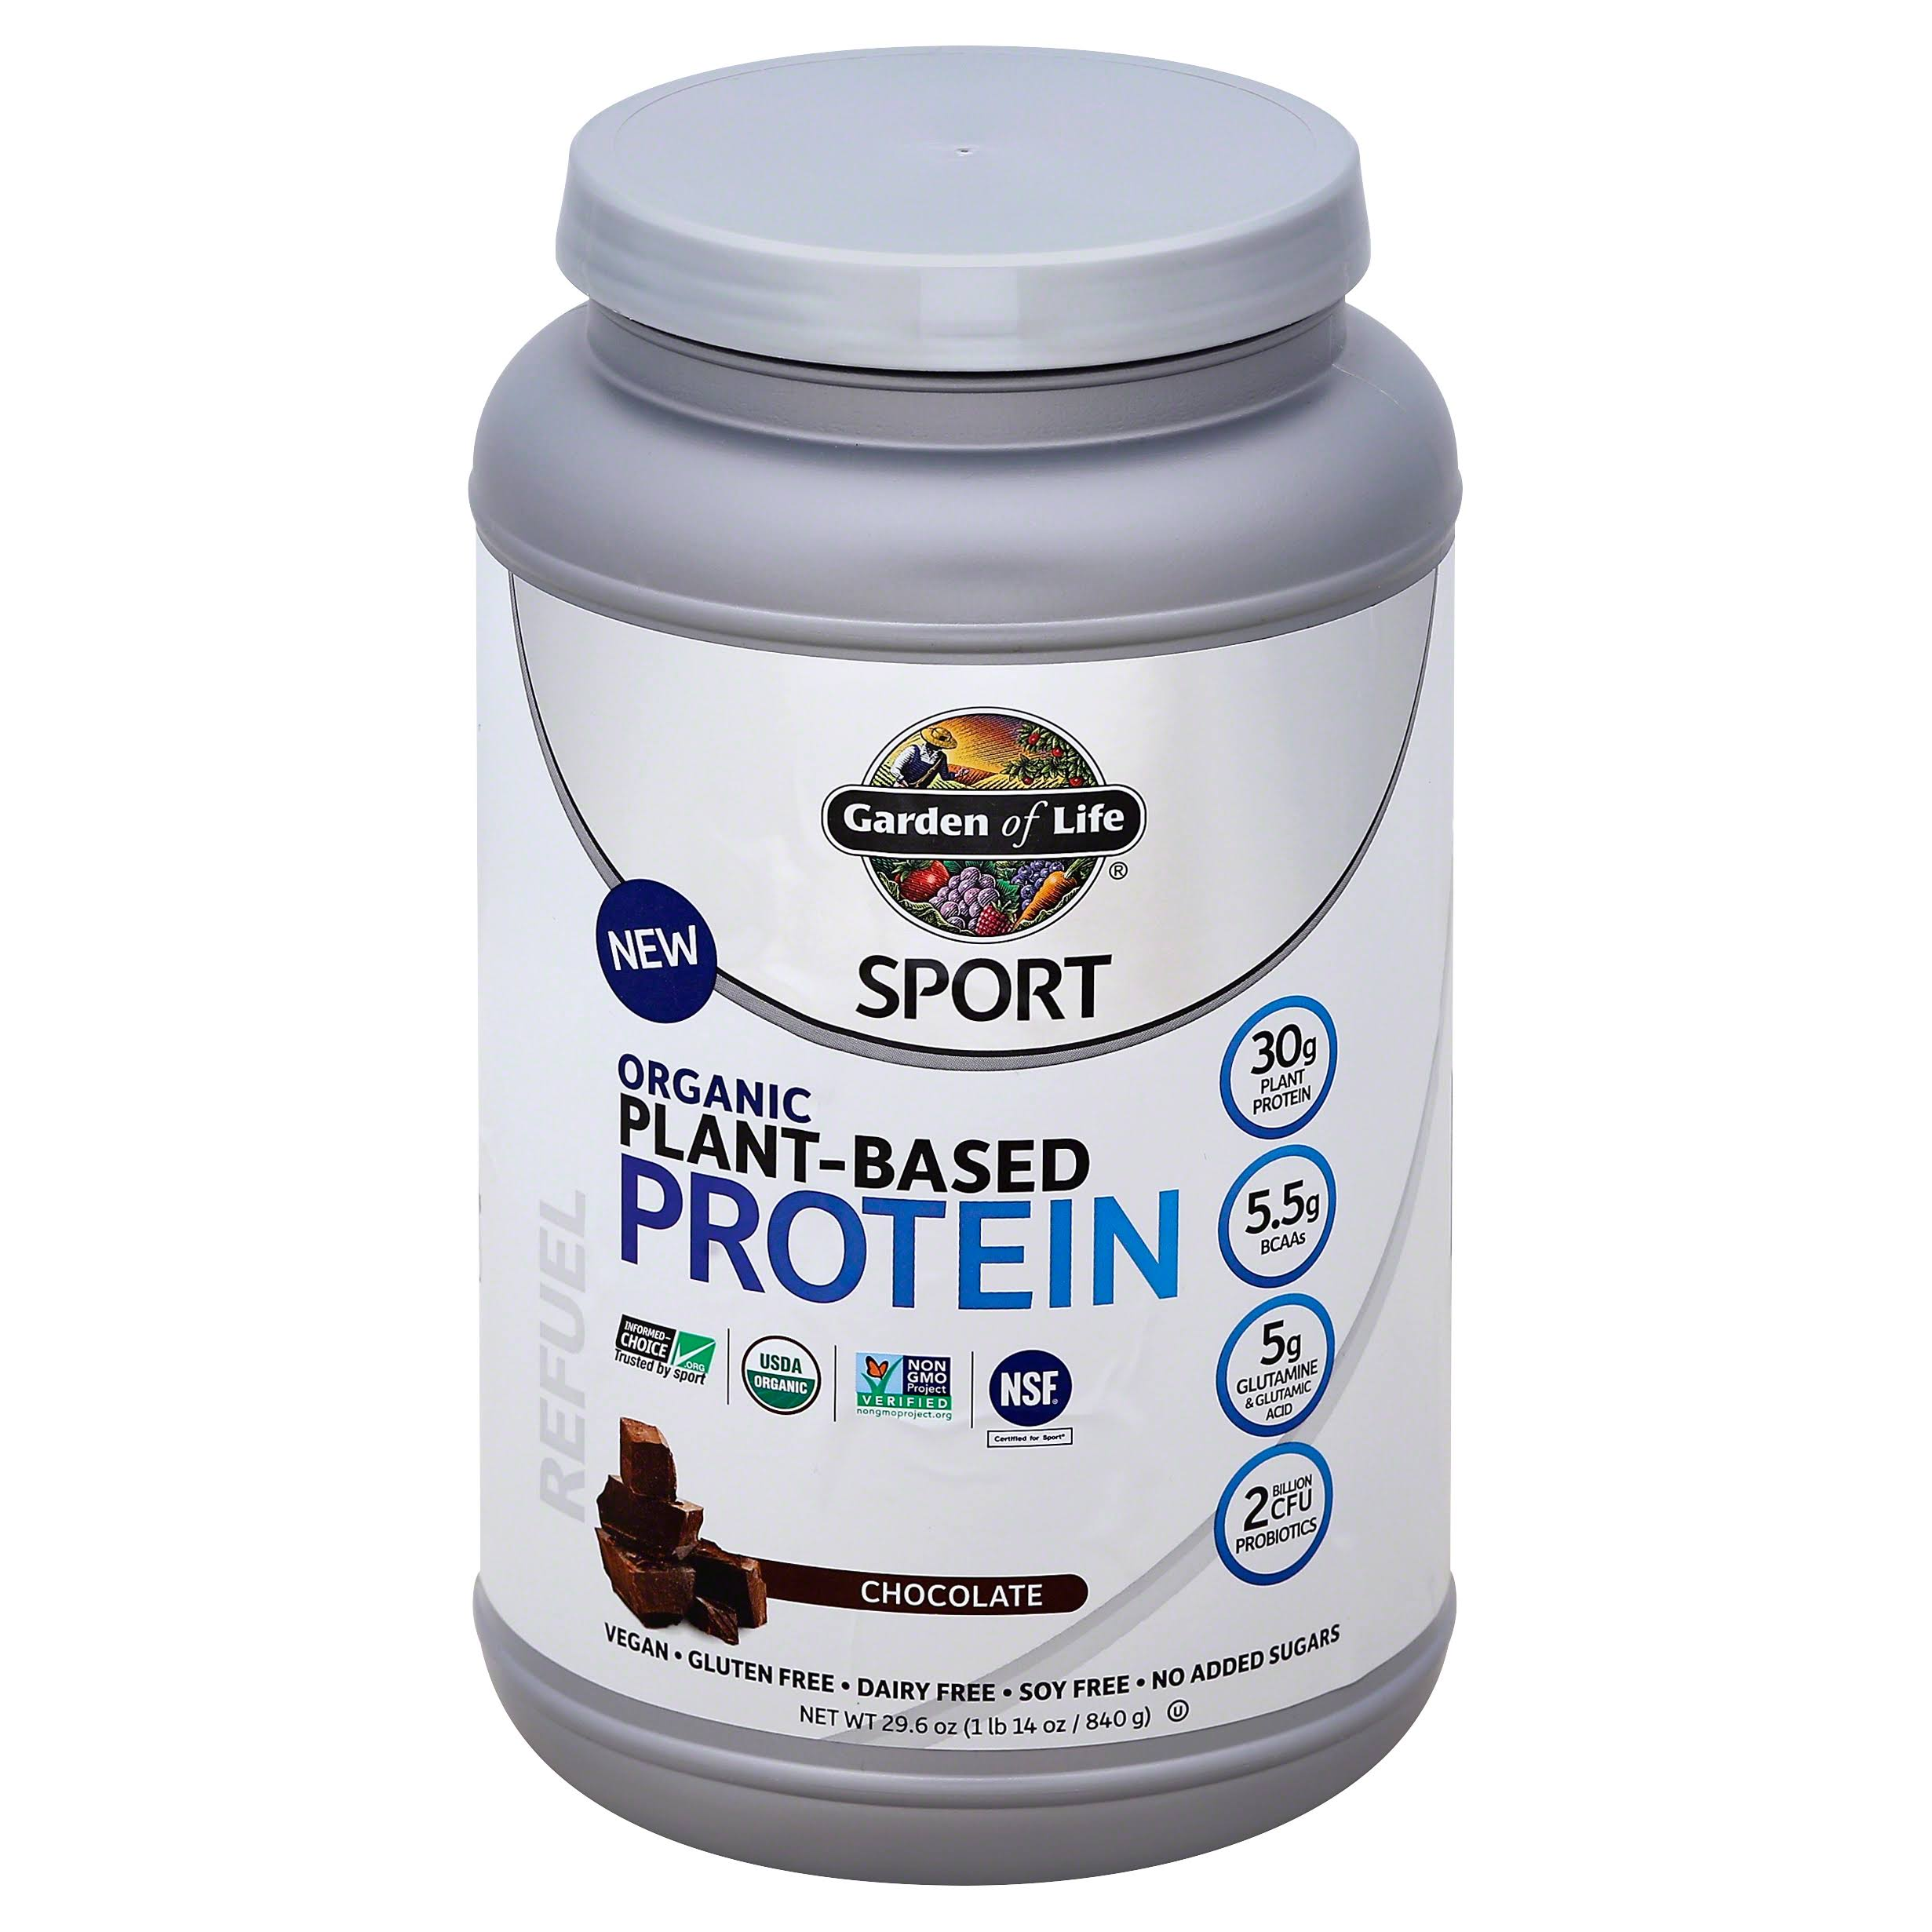 Garden of Life Sport Organic Plant-Based Protein Supplement - Chocolate, 38 Servings